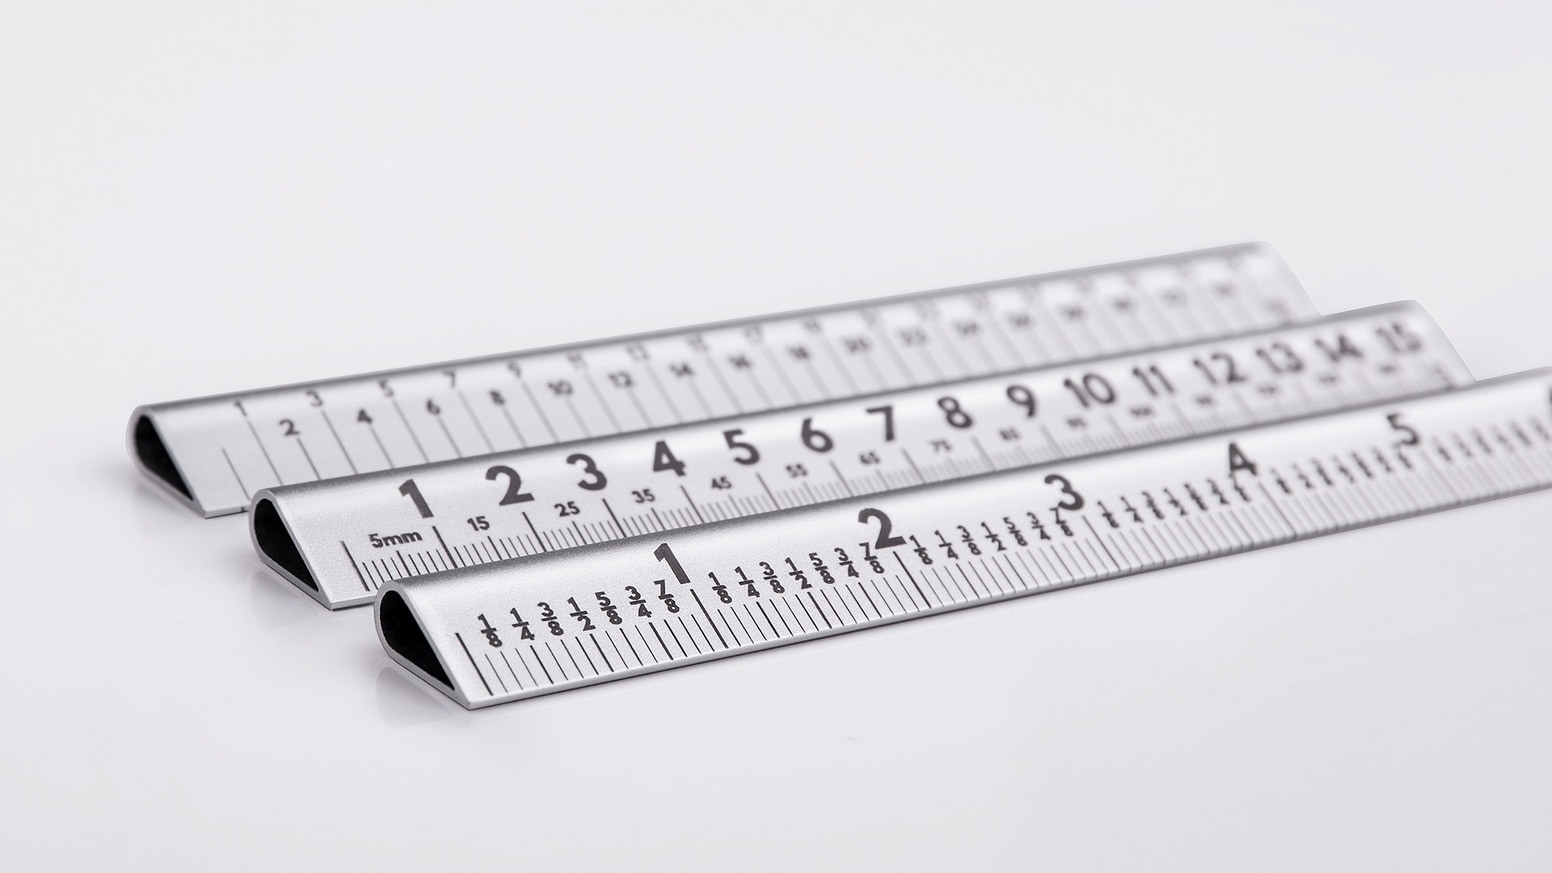 A laser engraved, aerospace aluminium ruler set at a practical 30° angle... designed for designers, suitable for everyone.